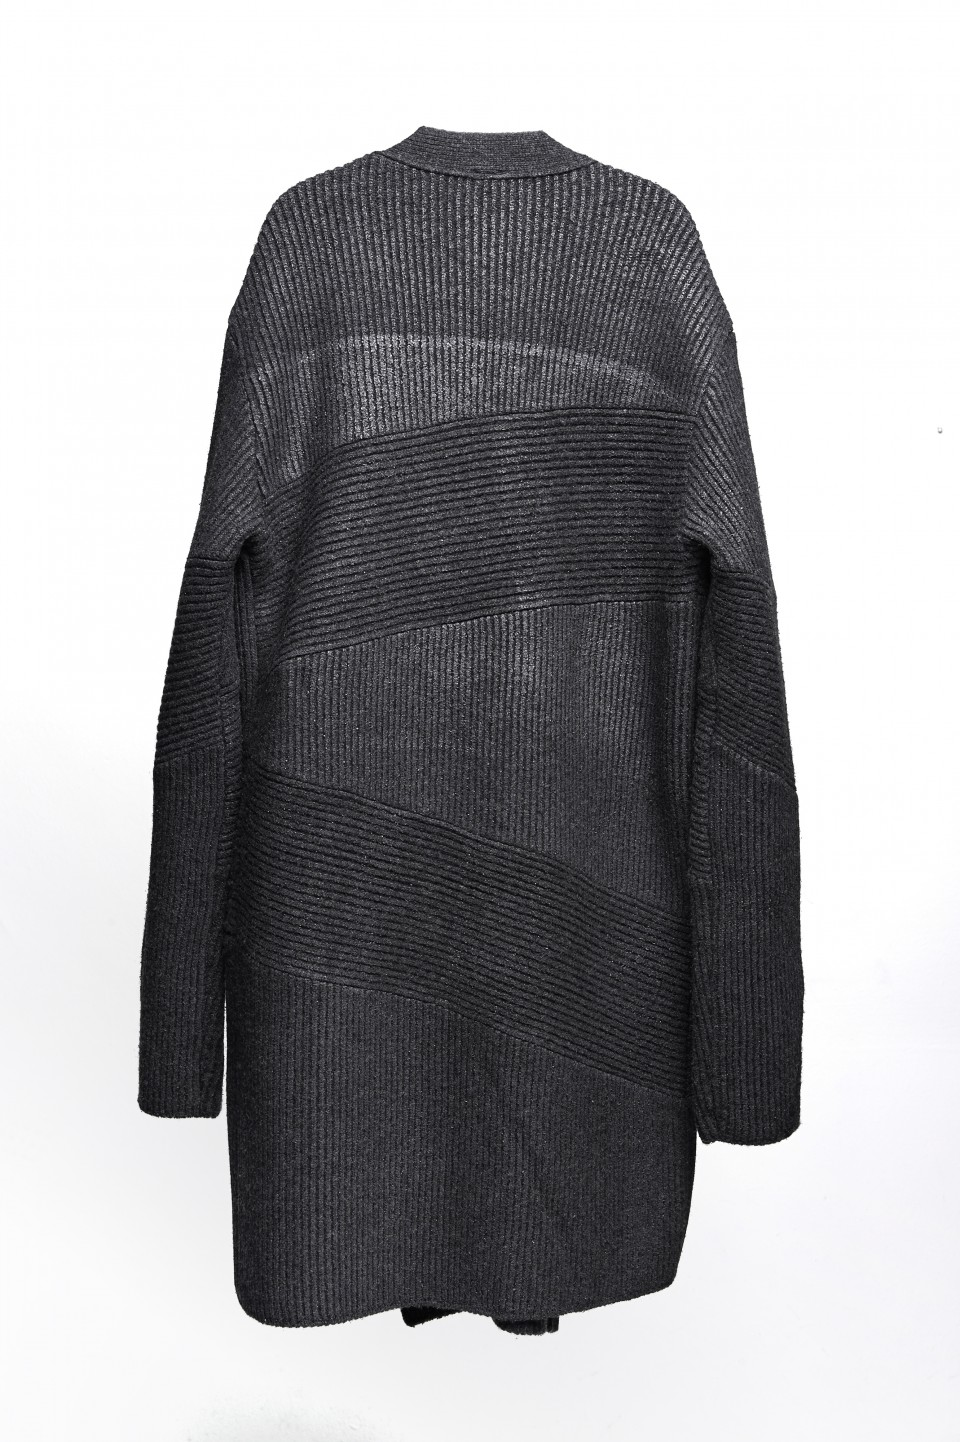 Asymmetrical texture coate knit cardigan